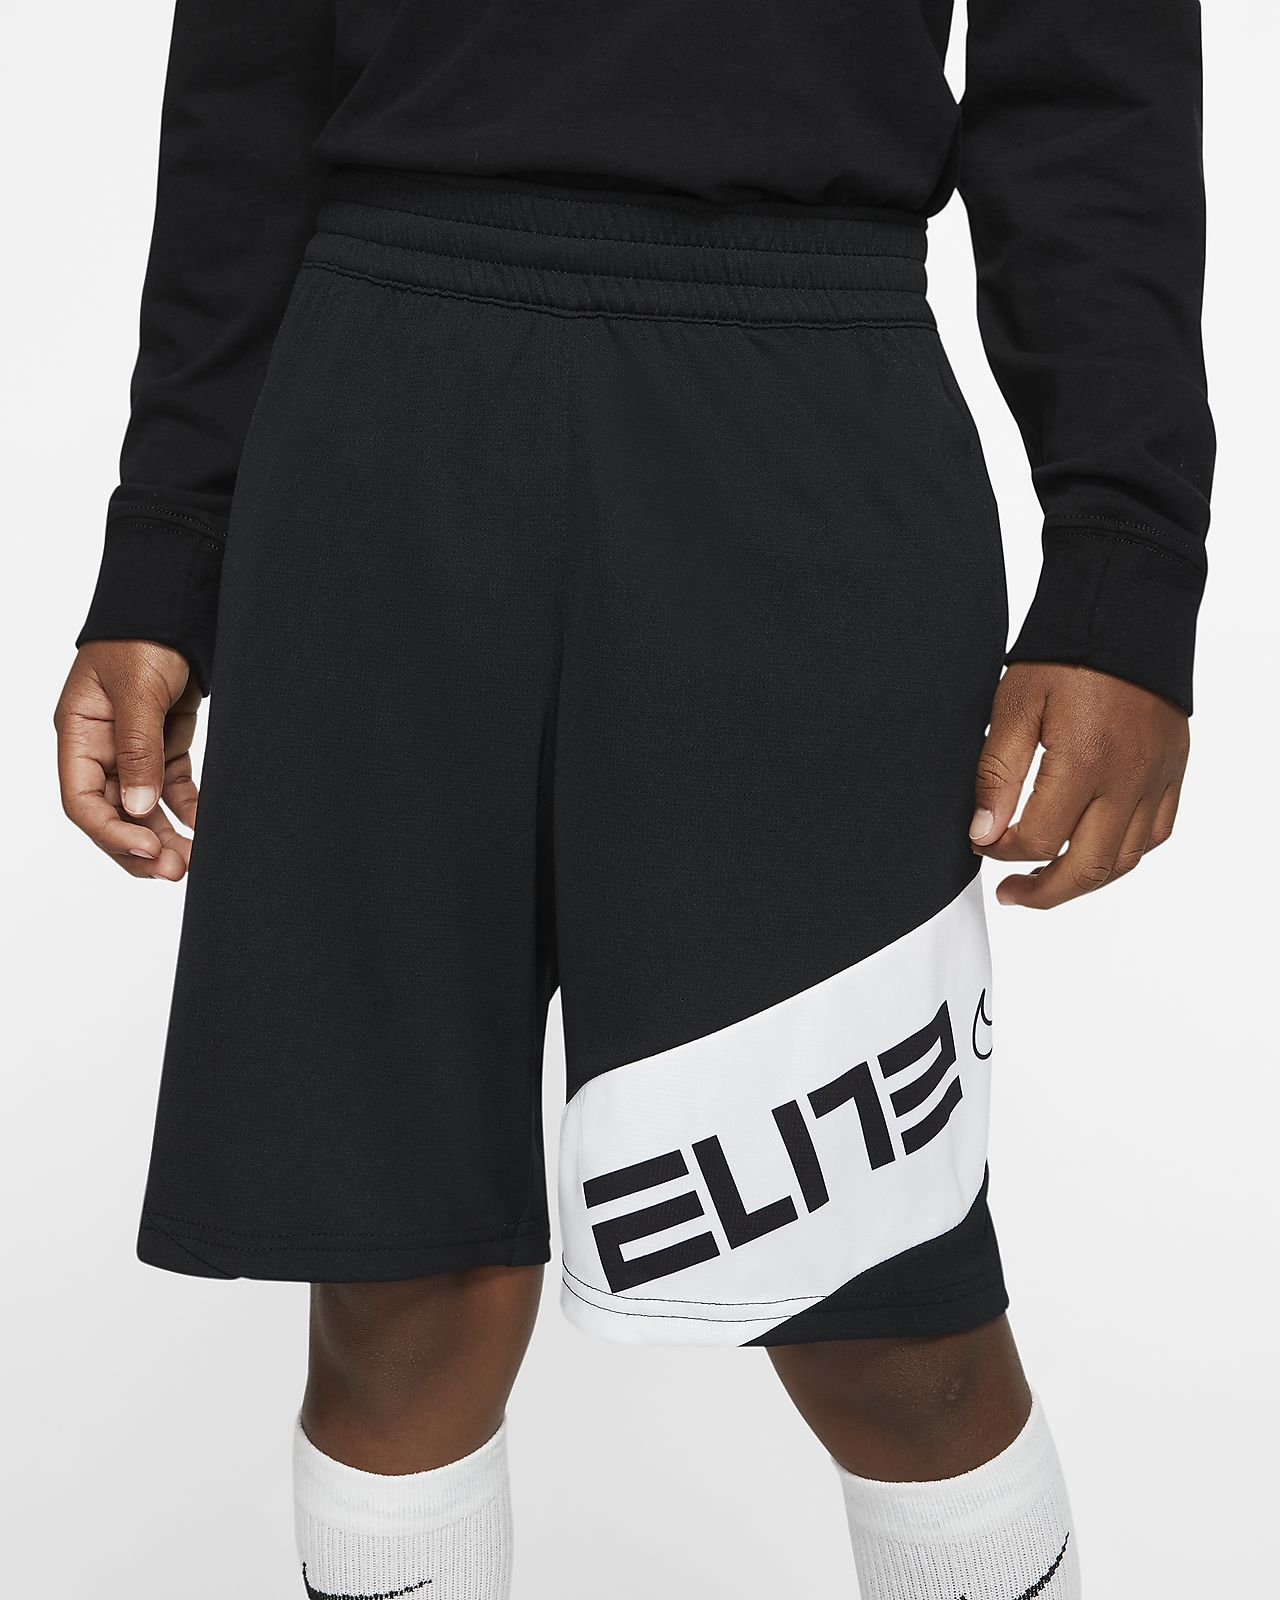 Nike Elite Performance Big Kids' (Boys') Basketball Shorts